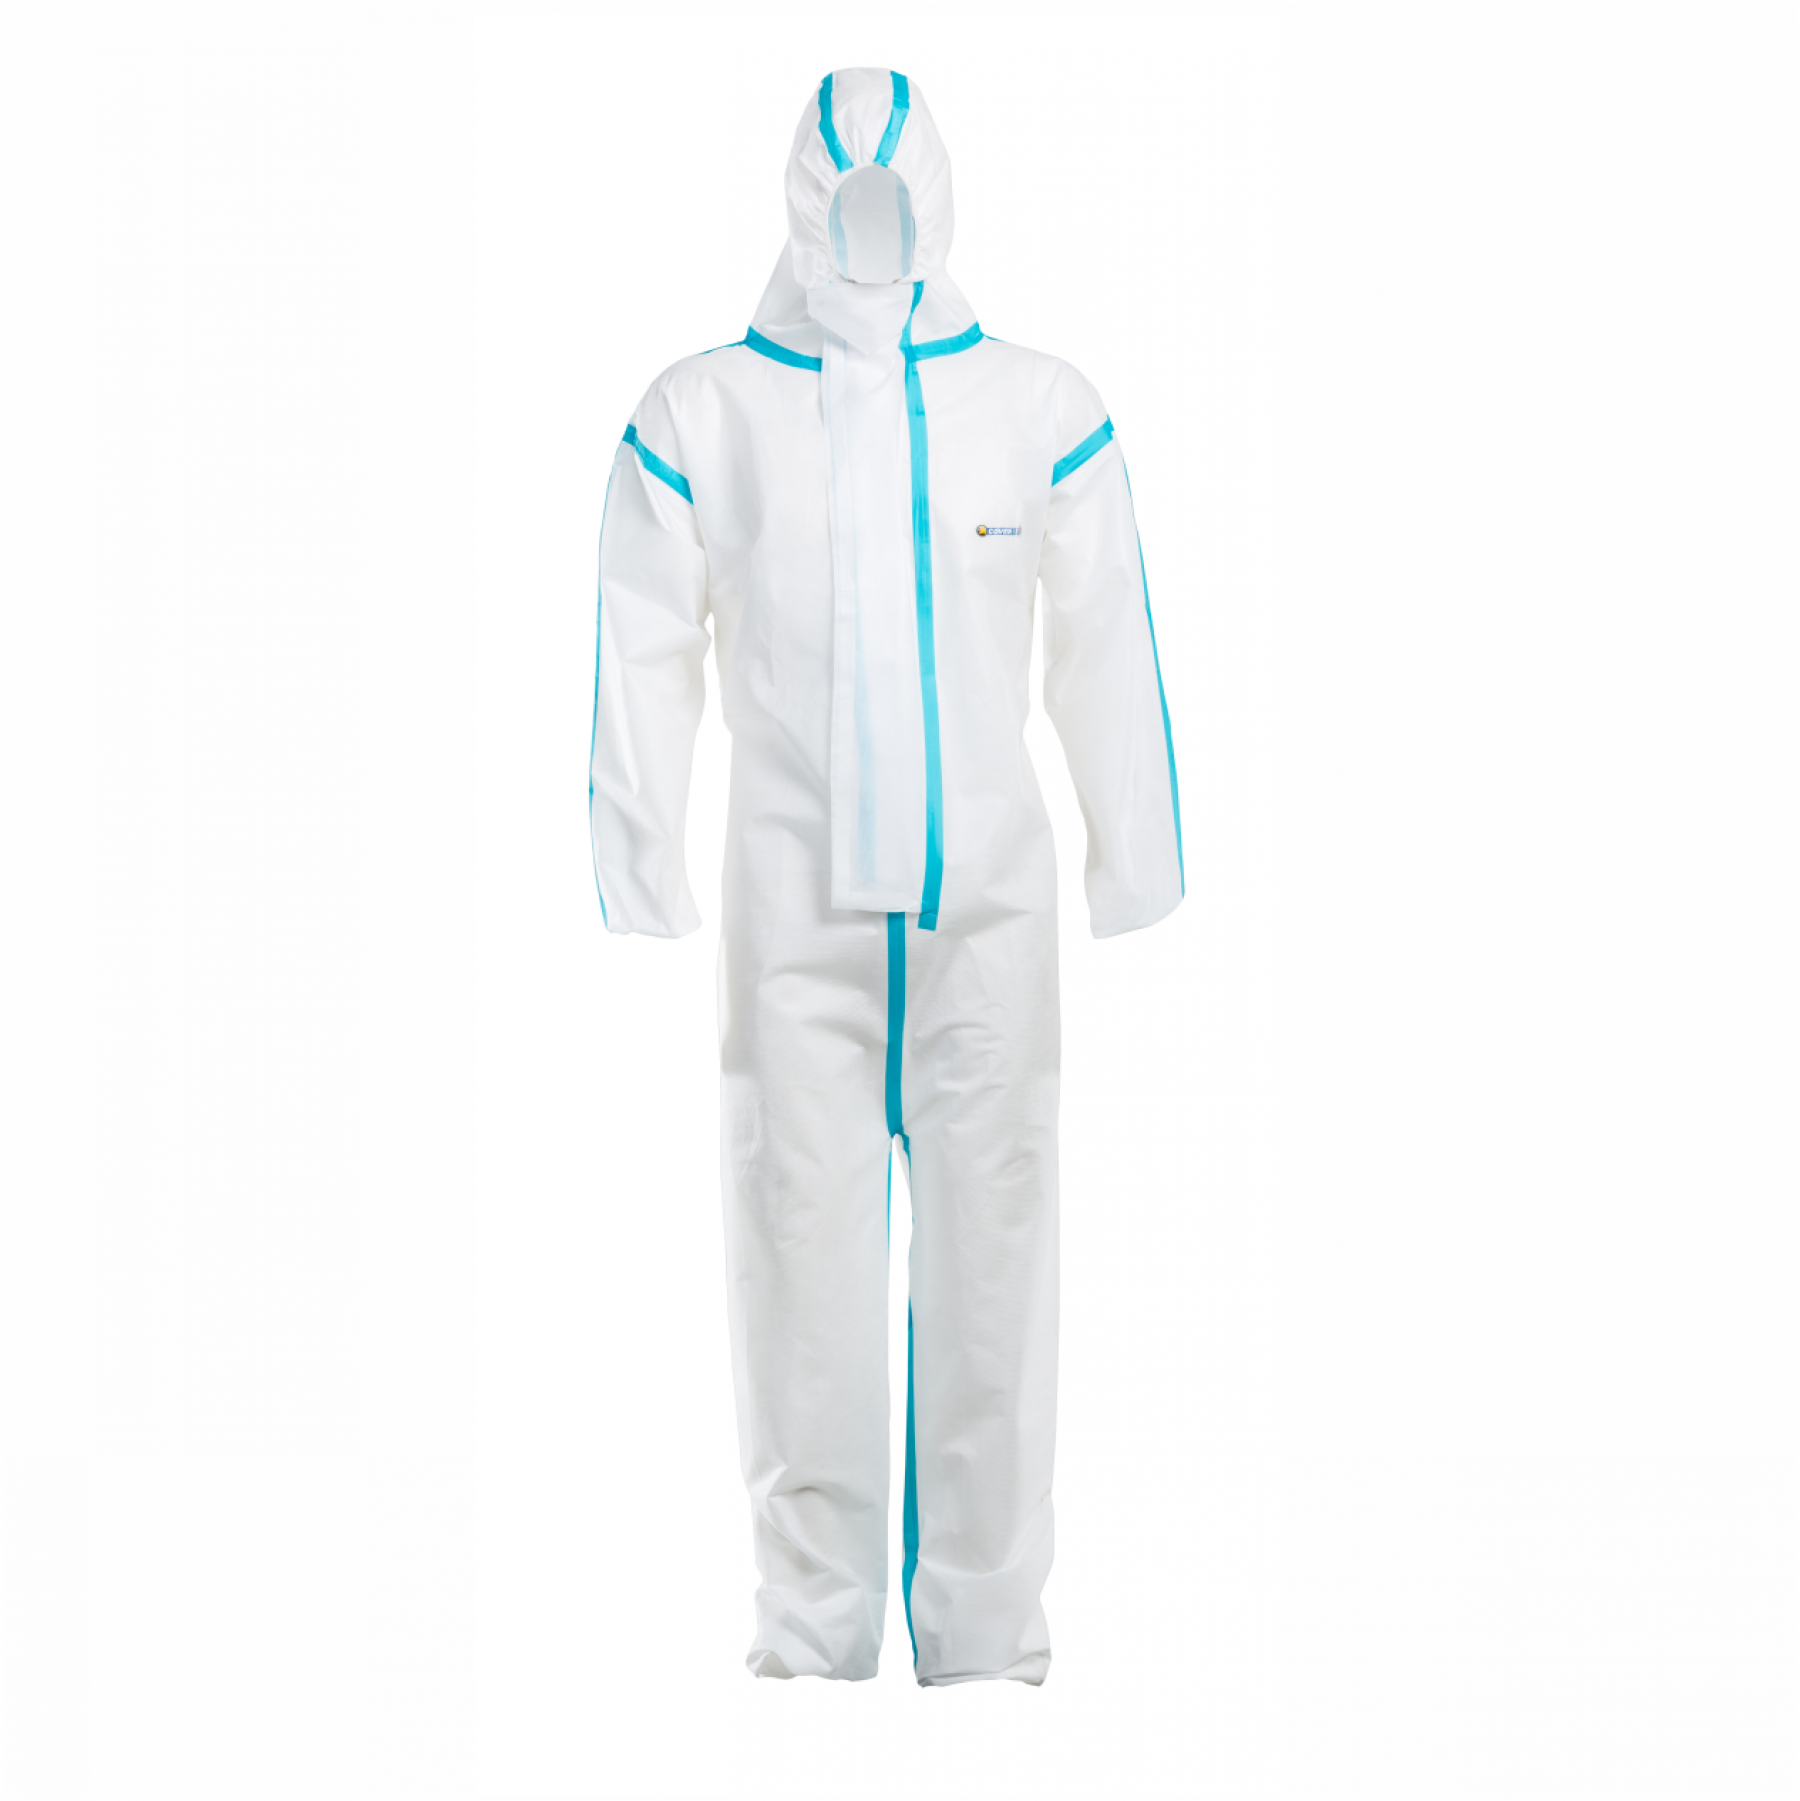 Coverstar Super Seal White Disposable Suit, Size M